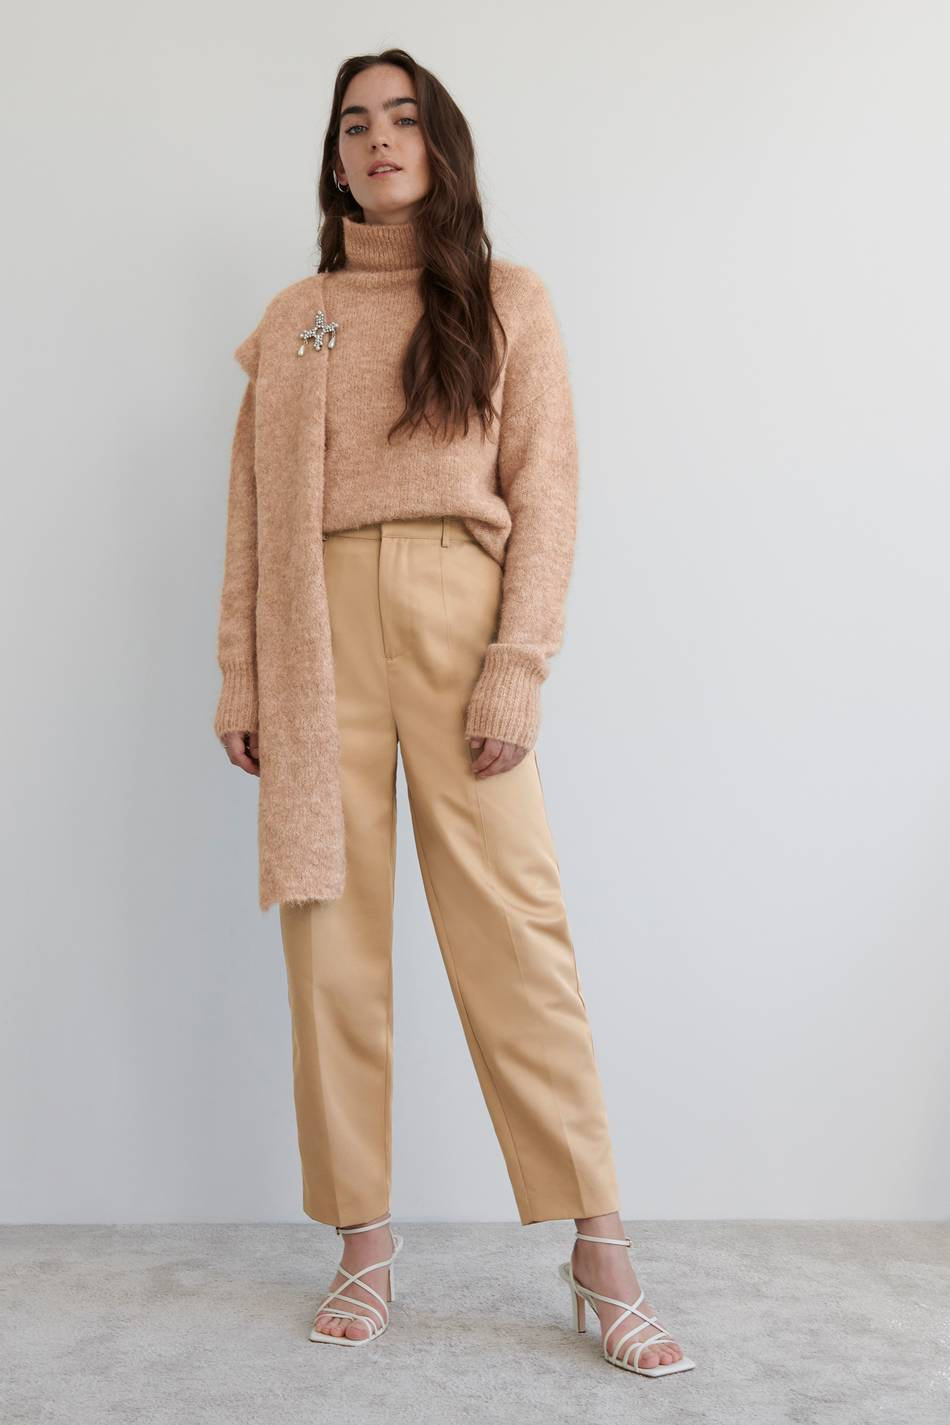 Gina Tricot Parks trousers